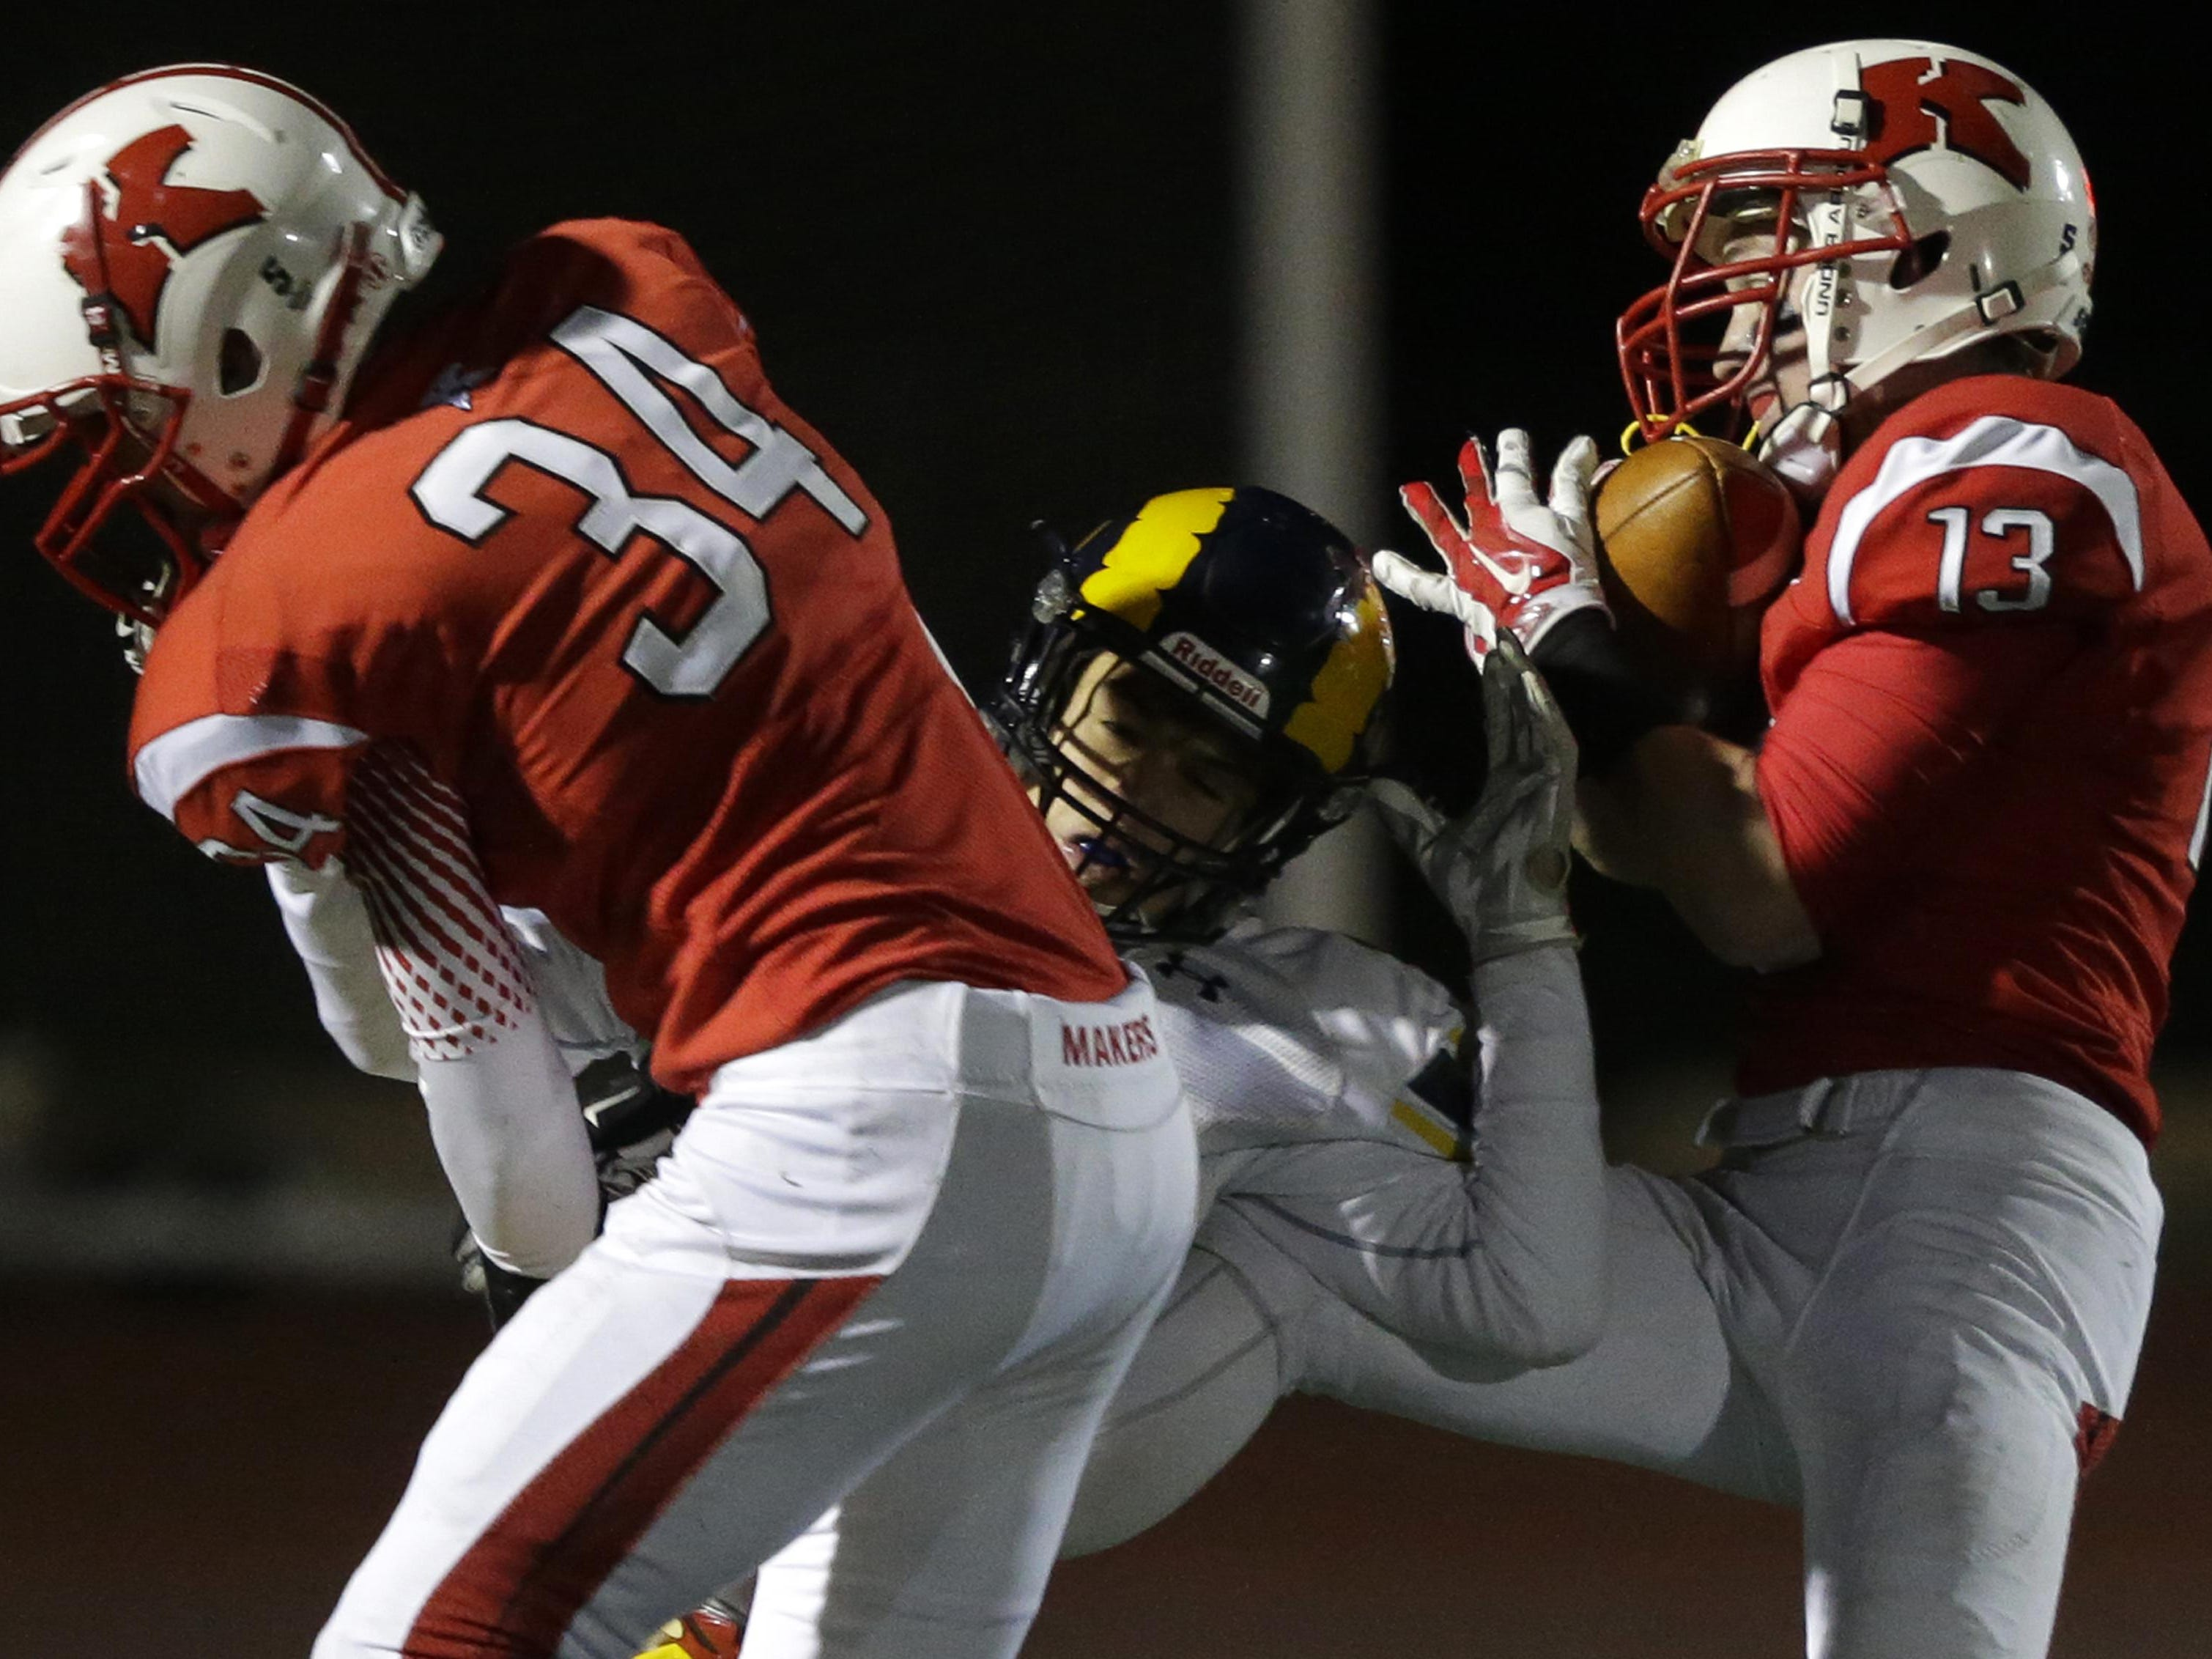 Bailey Marasch (right) makes an interception during Kimberly's state semifinal win over Marquette on Nov. 13.